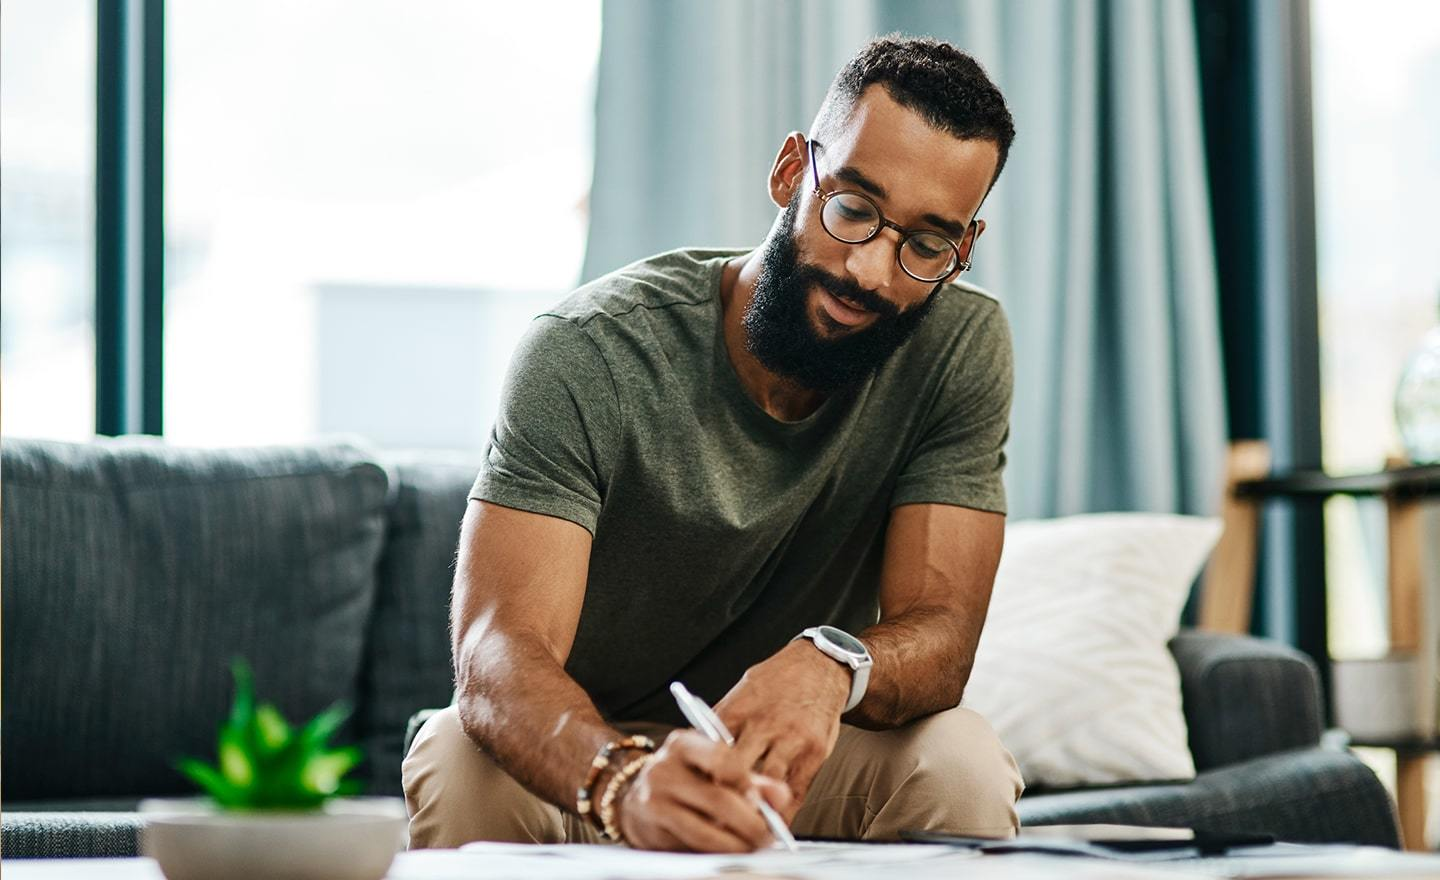 Man working from home writing notes